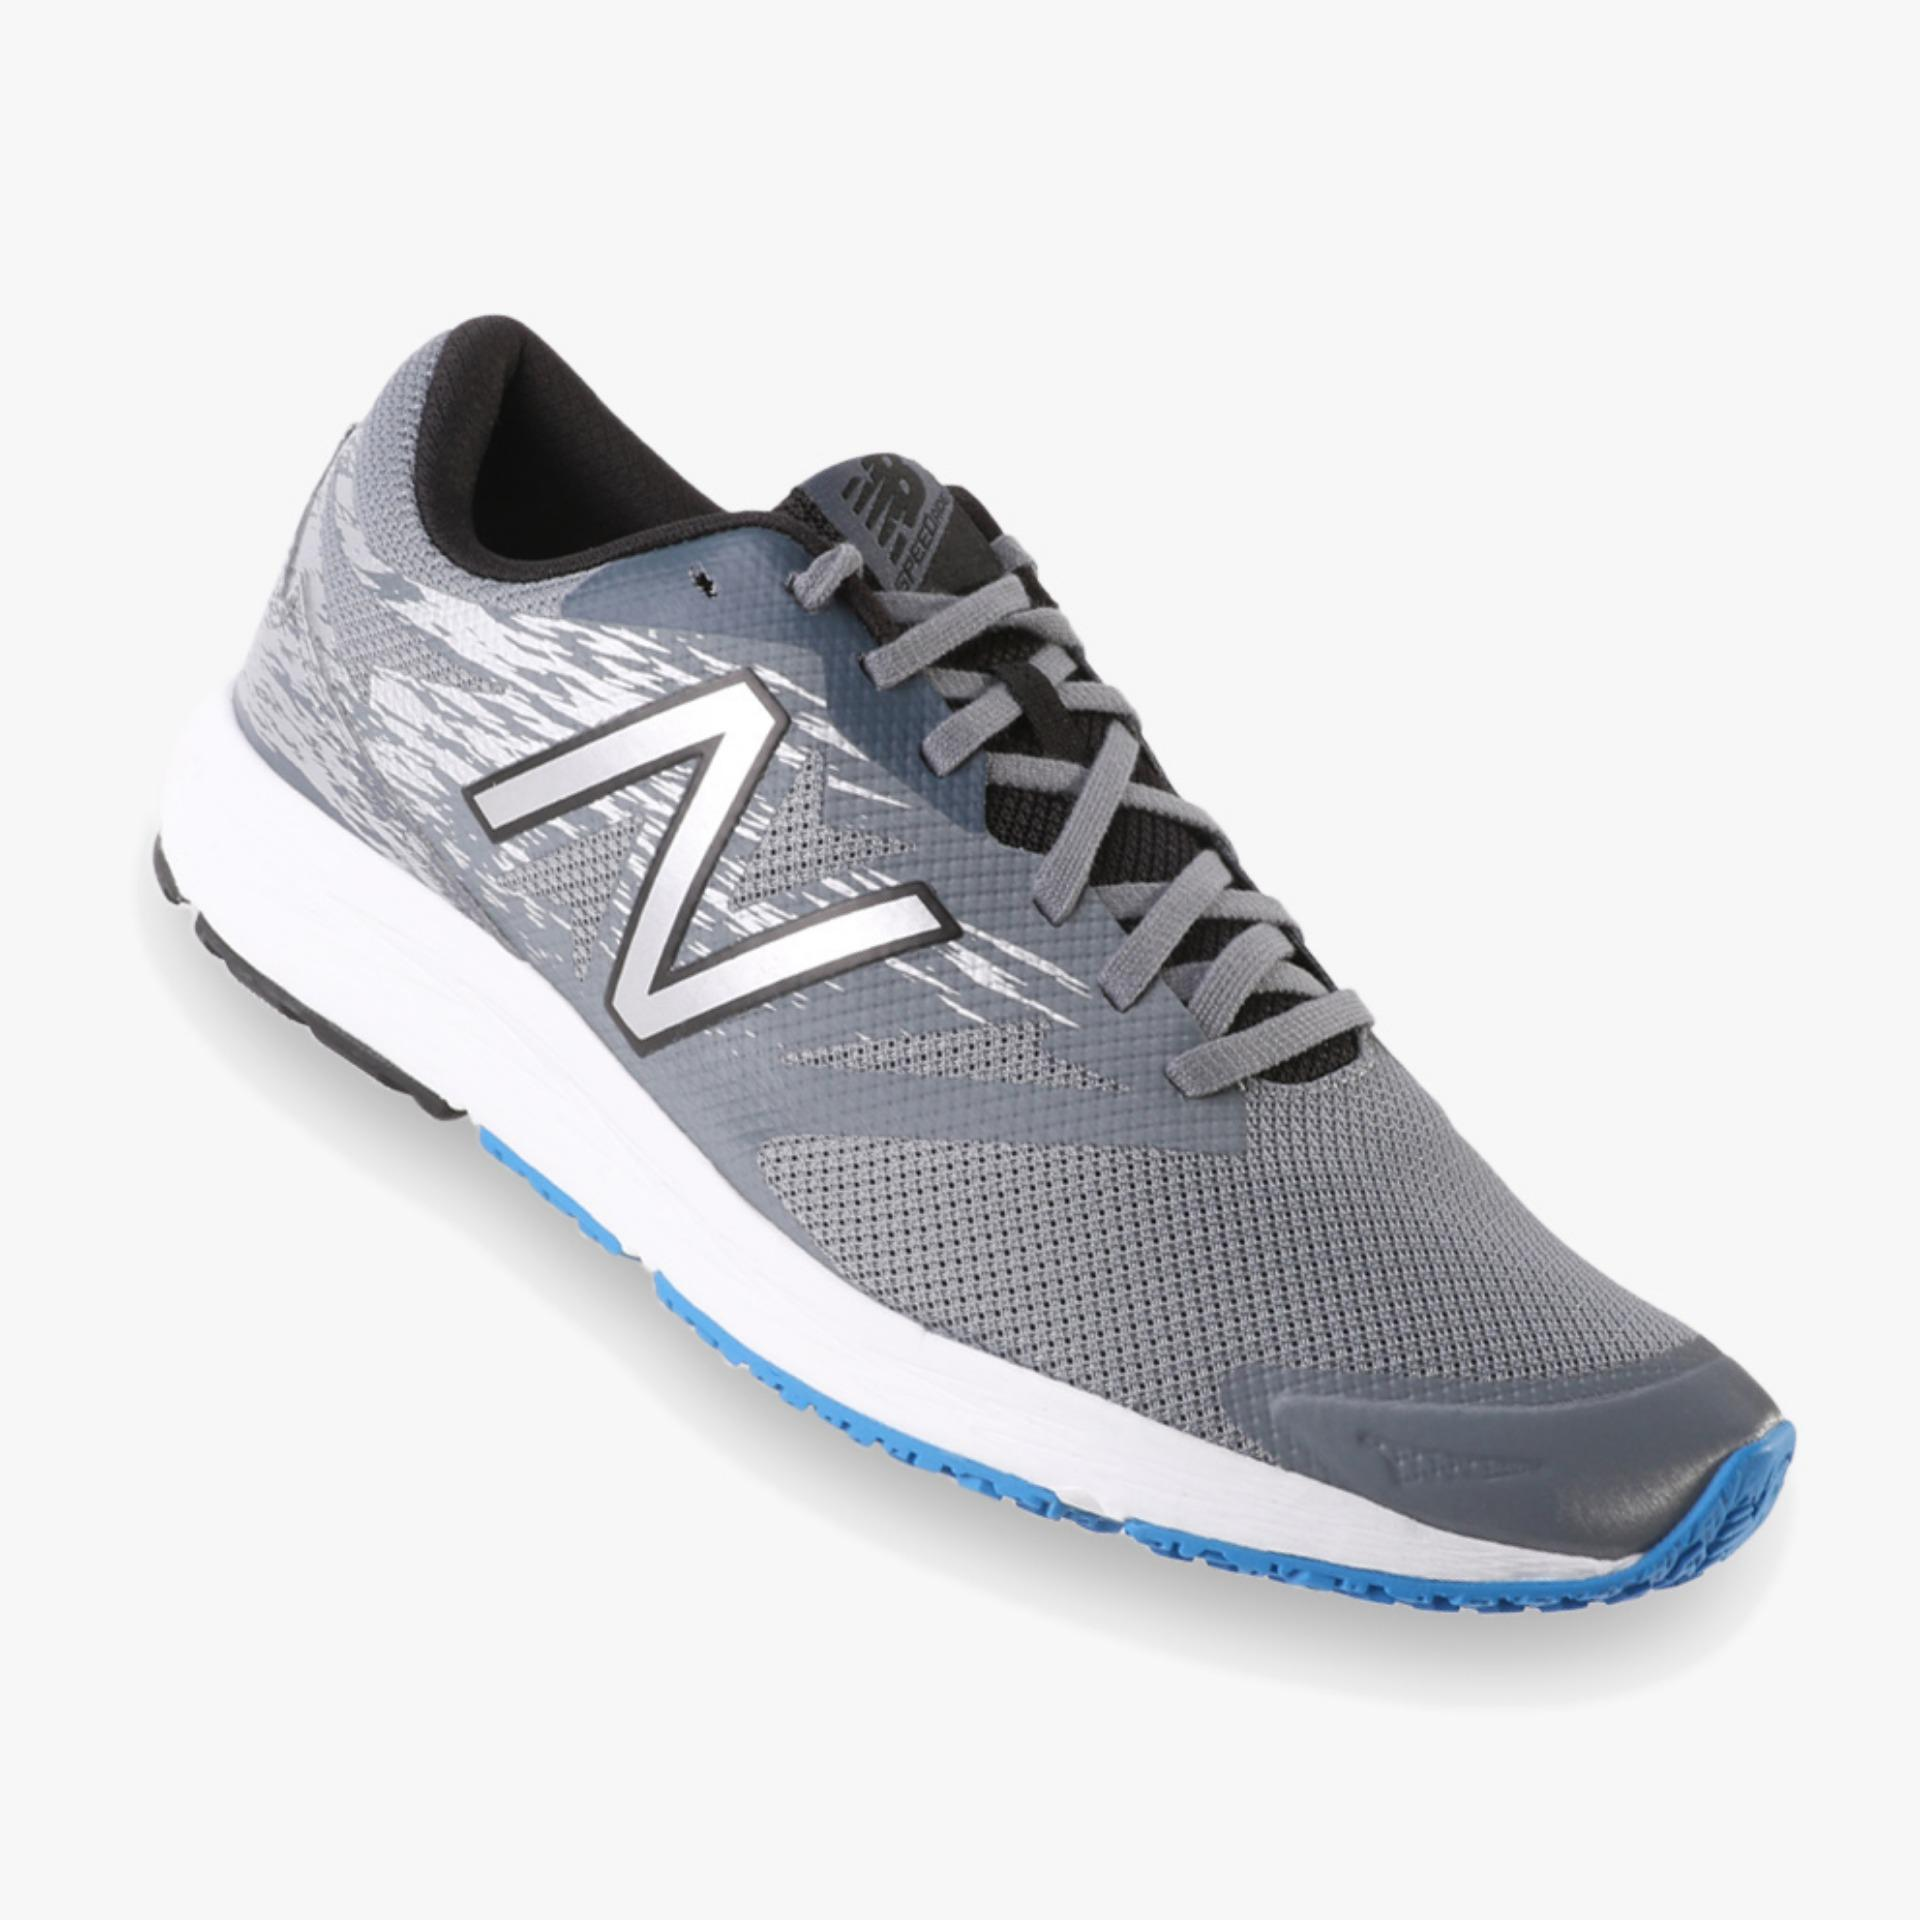 Toko New Balance Speed Ride Flash Men S Running Shoes Abu Abu Terlengkap Di Jawa Barat